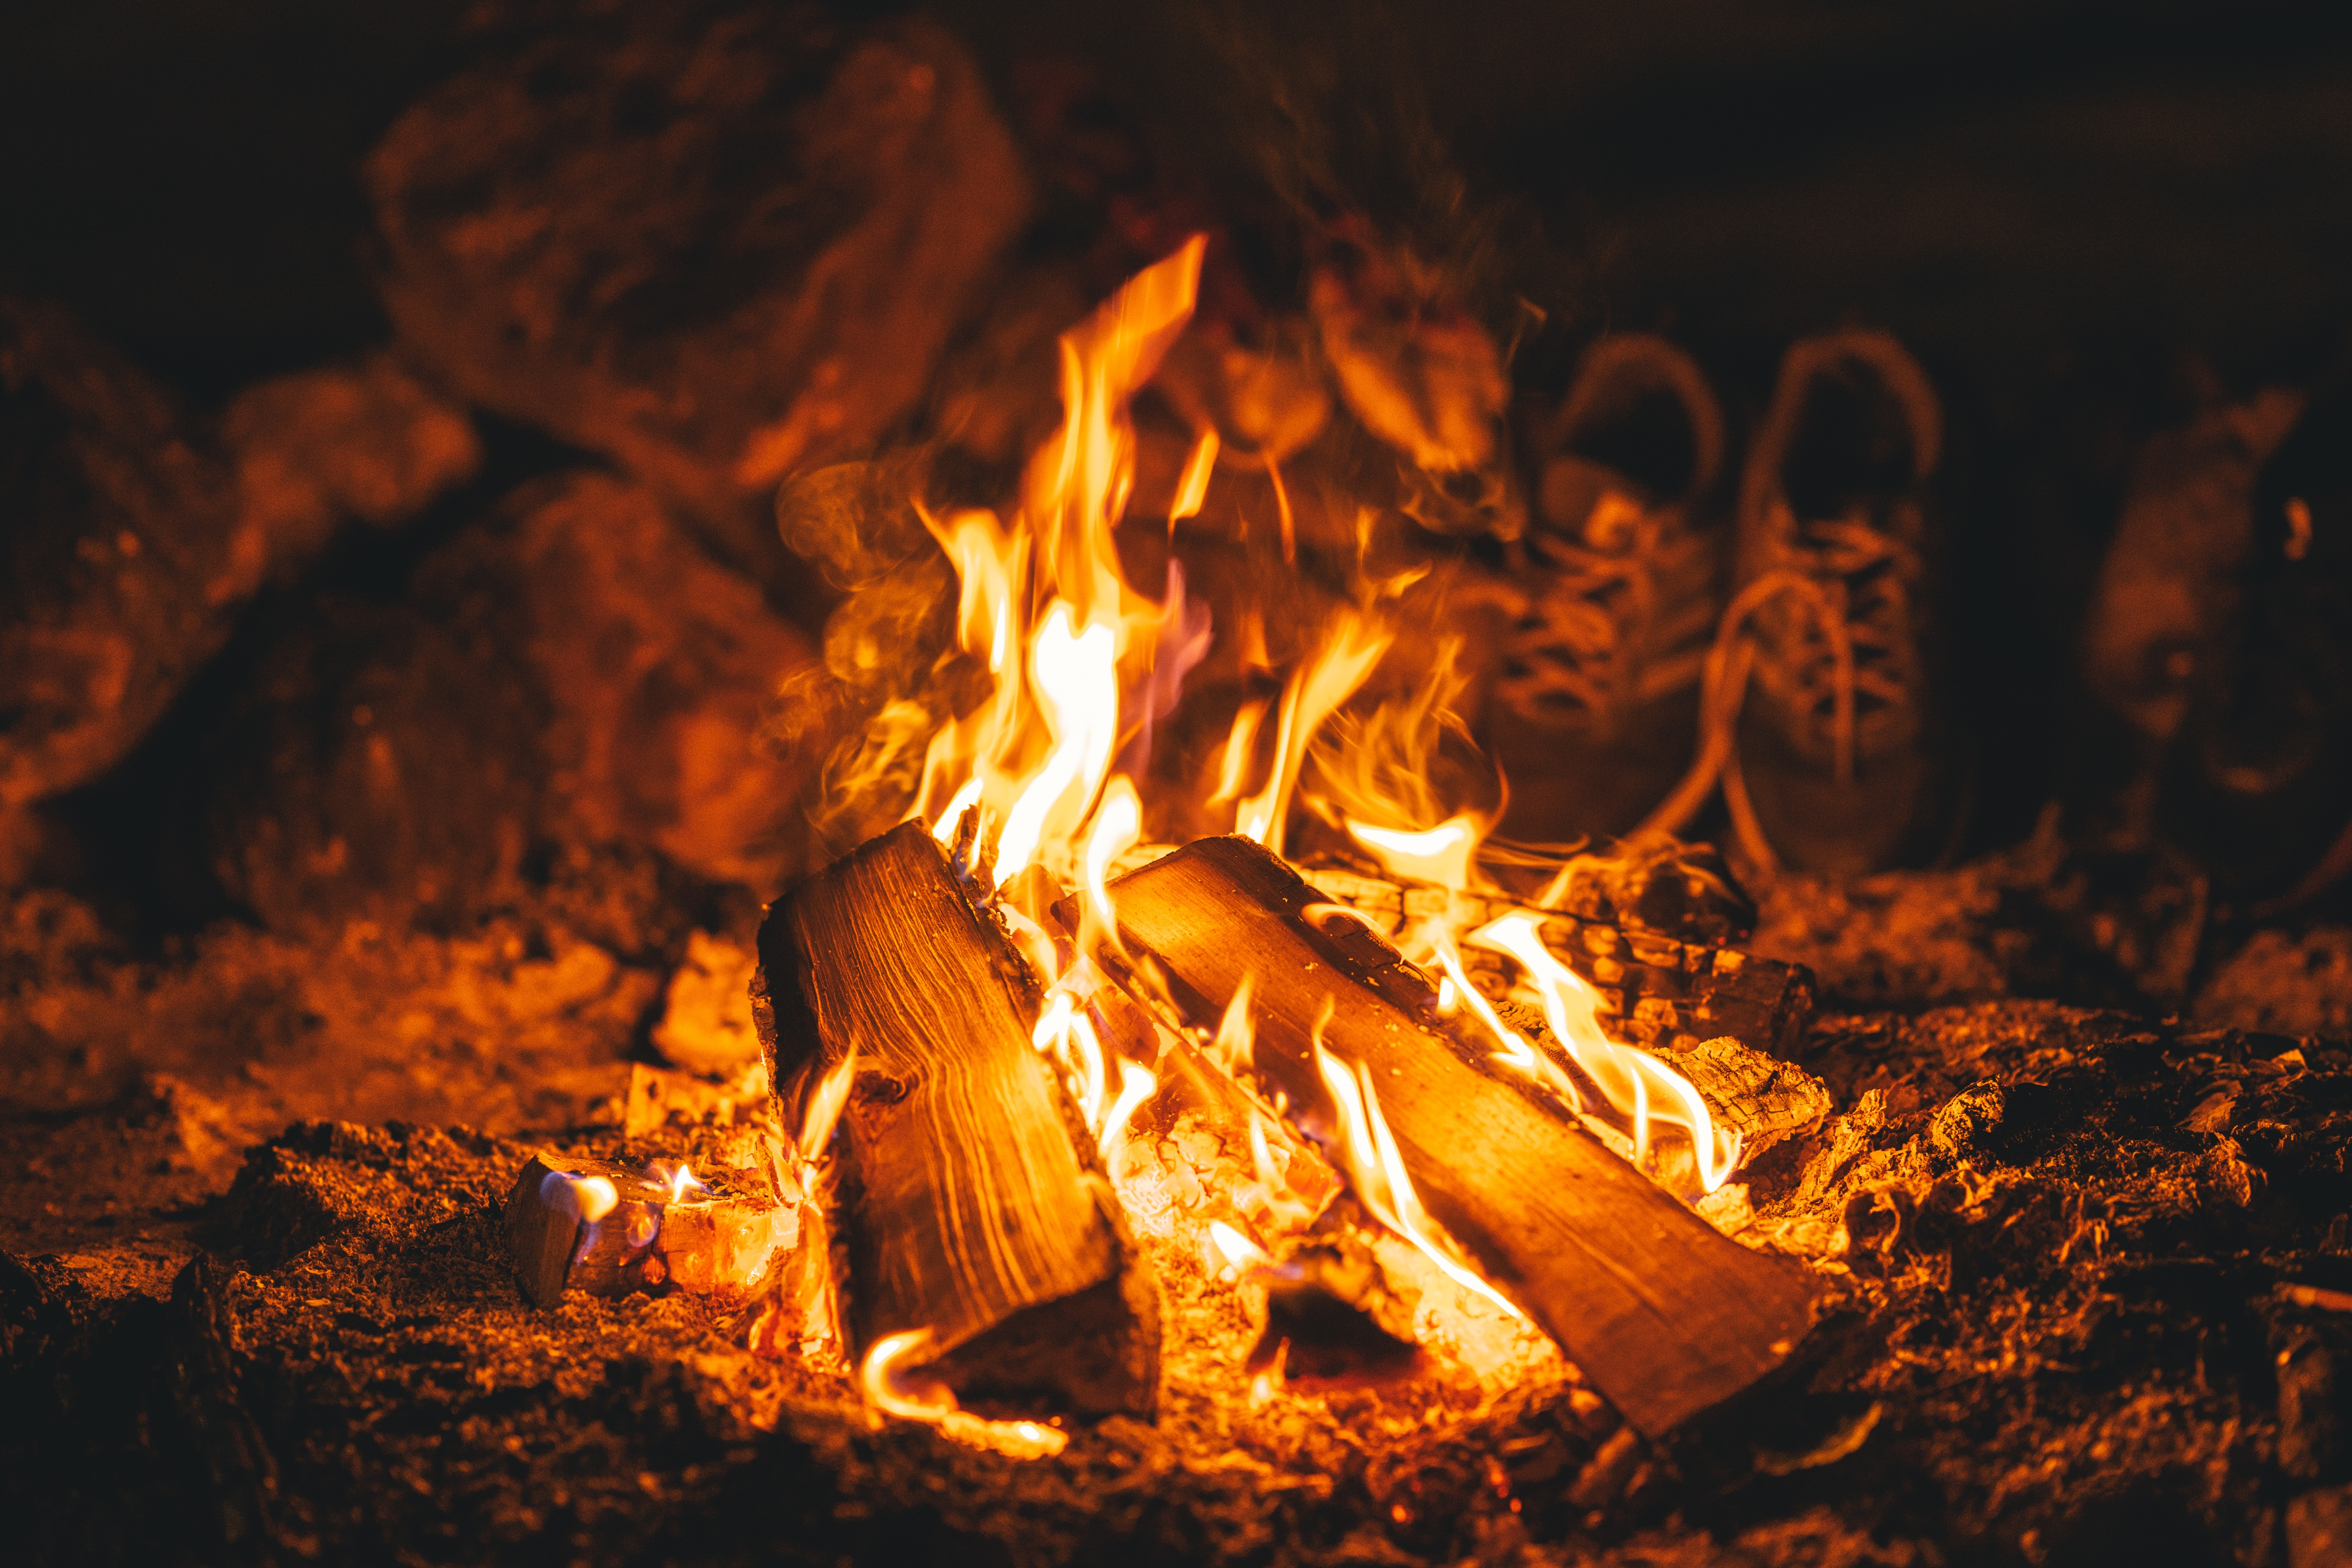 145507 Screensavers and Wallpapers Bonfire for phone. Download Fire, Bonfire, Coals, Flame, Miscellanea, Miscellaneous, Firewood, To Burn, Burn pictures for free